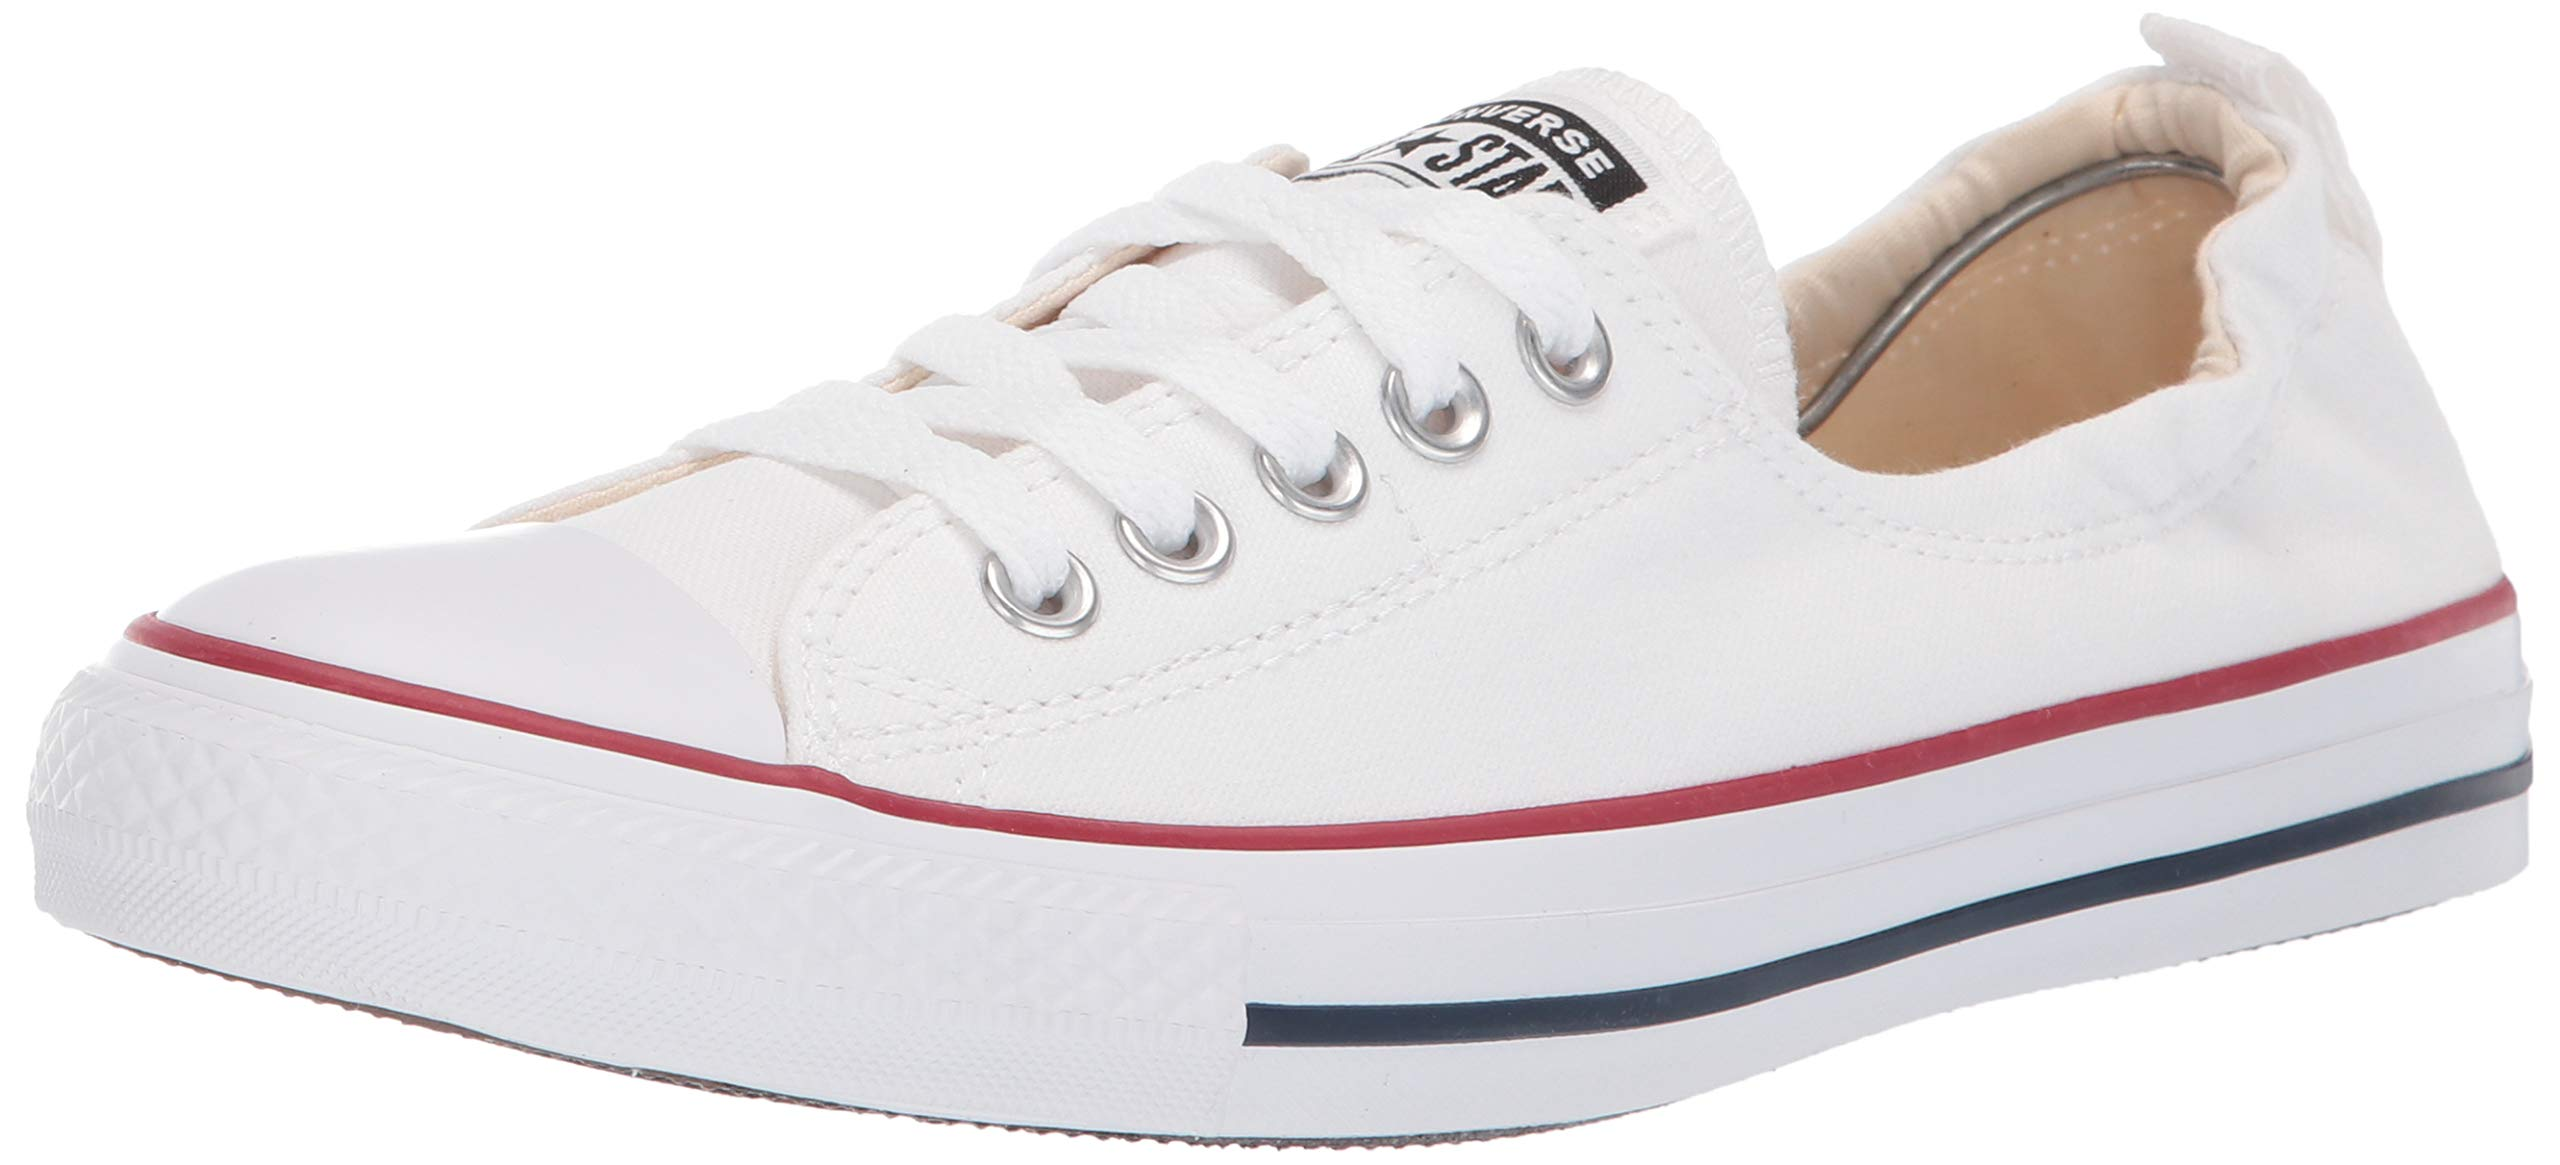 Taylor Star mUs D mMen Up Converse Women 5 Sneaker Chuck B All Lace 7 Shoreline White ALq4j3R5